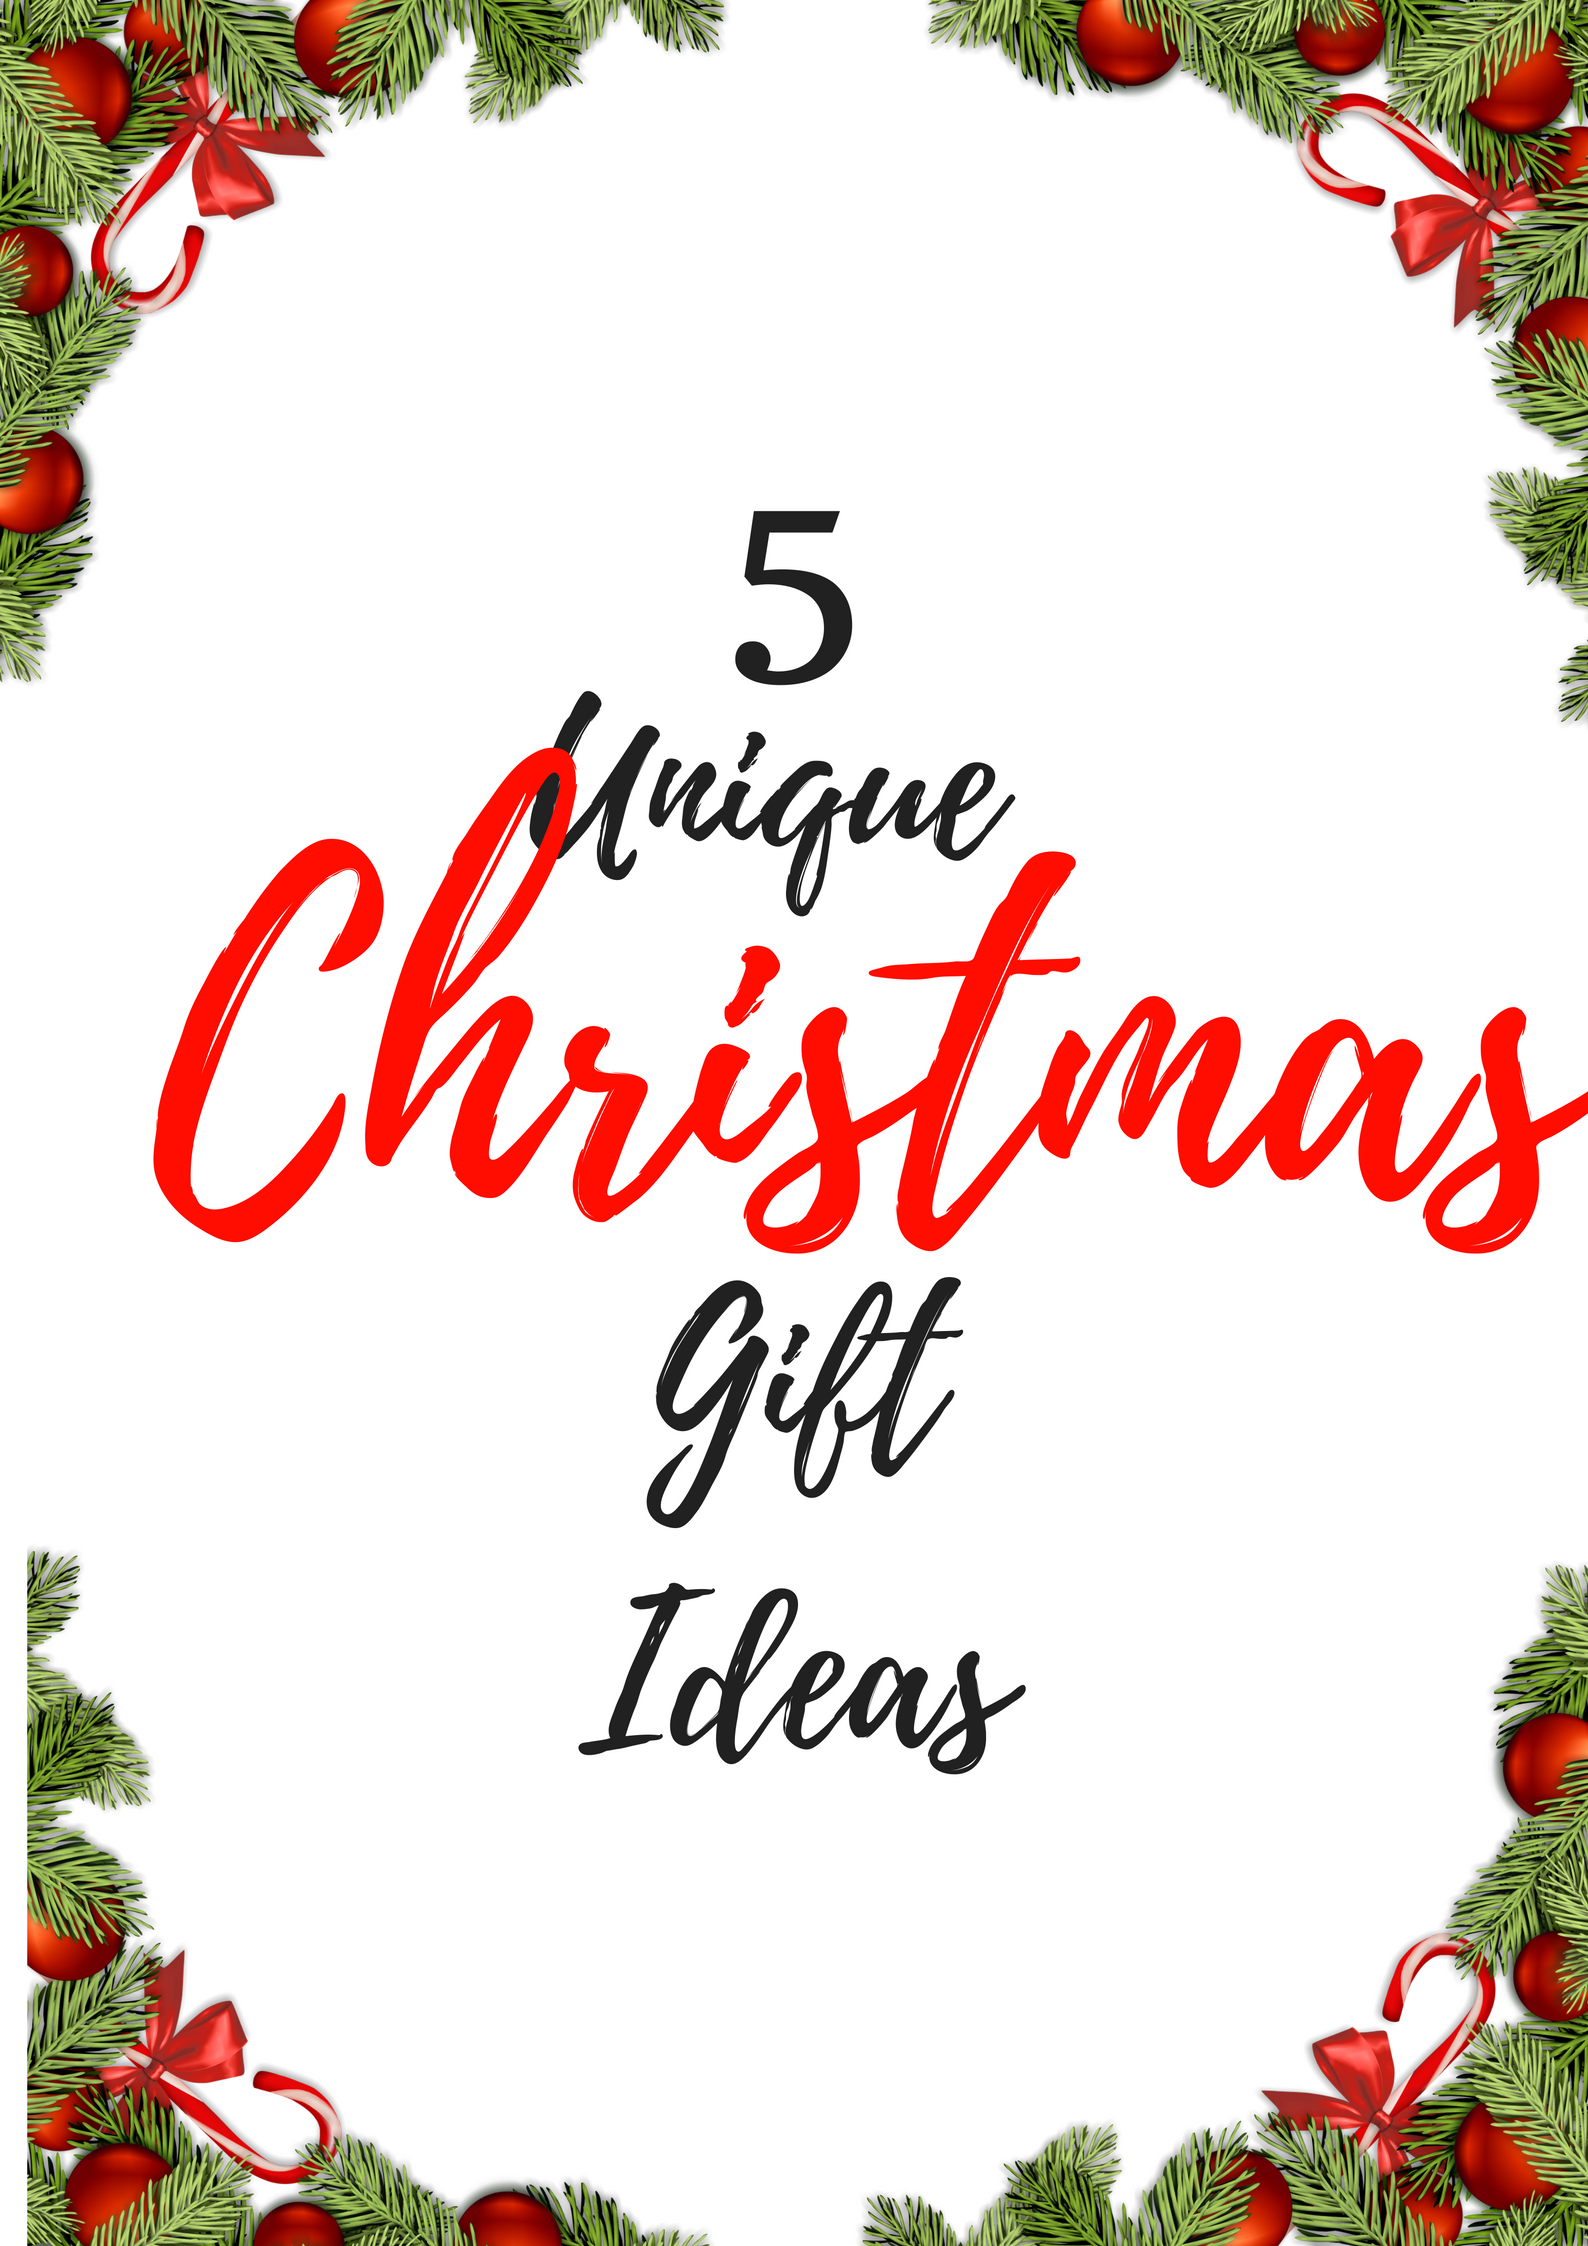 5 Unique Christmas Gift Ideas for Your Loved Ones | Schule, Geschenk ...